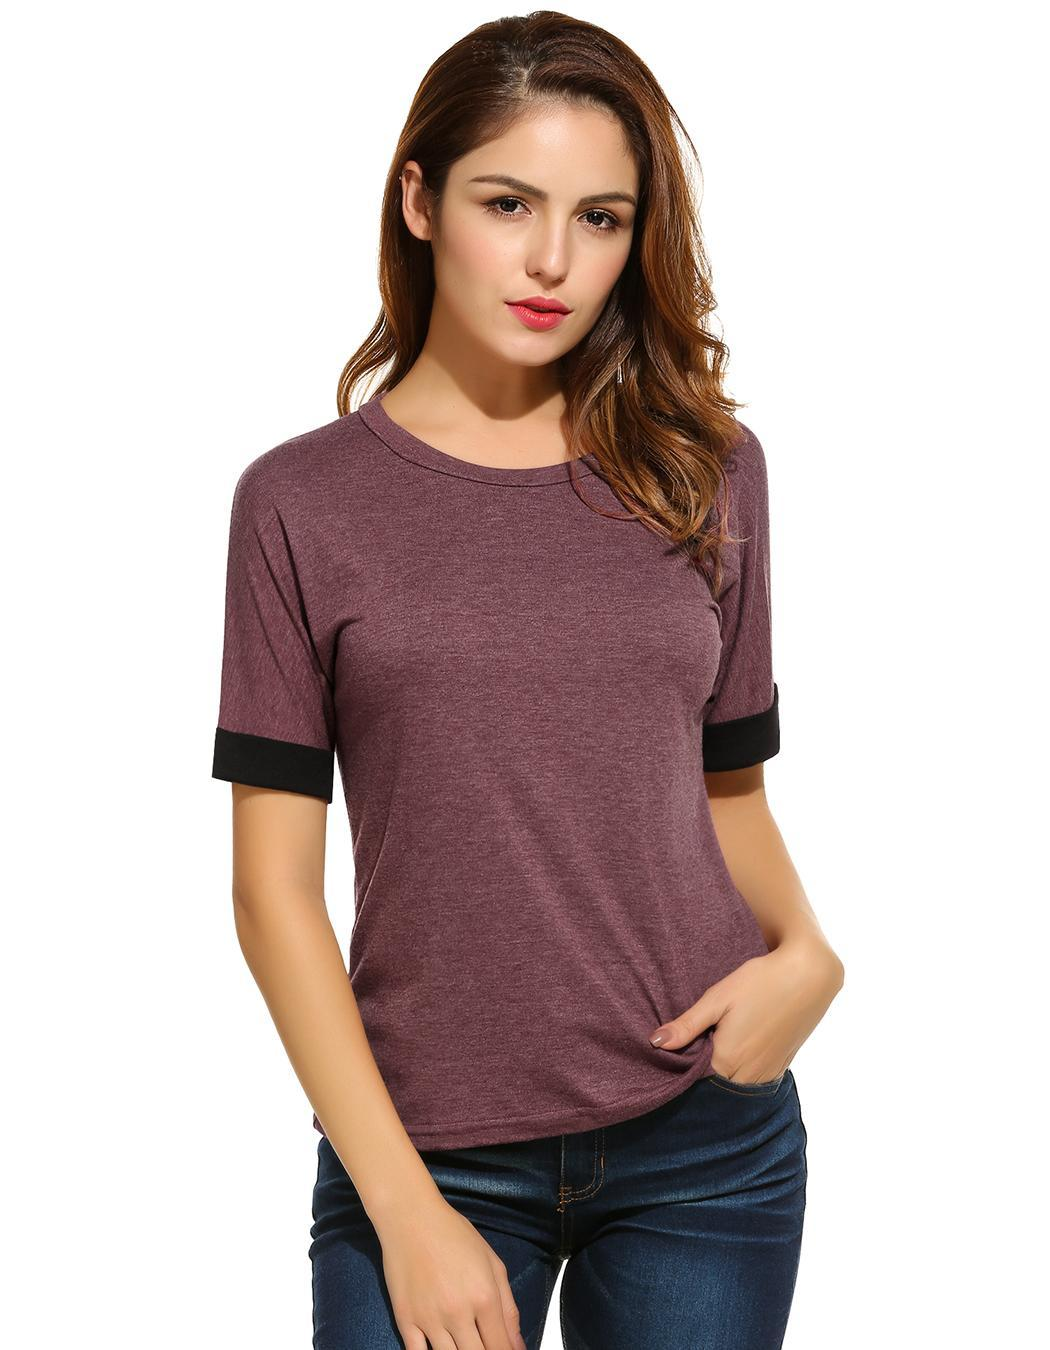 Women Casual Short Patchwork Sleeve Comfy Loose T-Shirt Tops 3